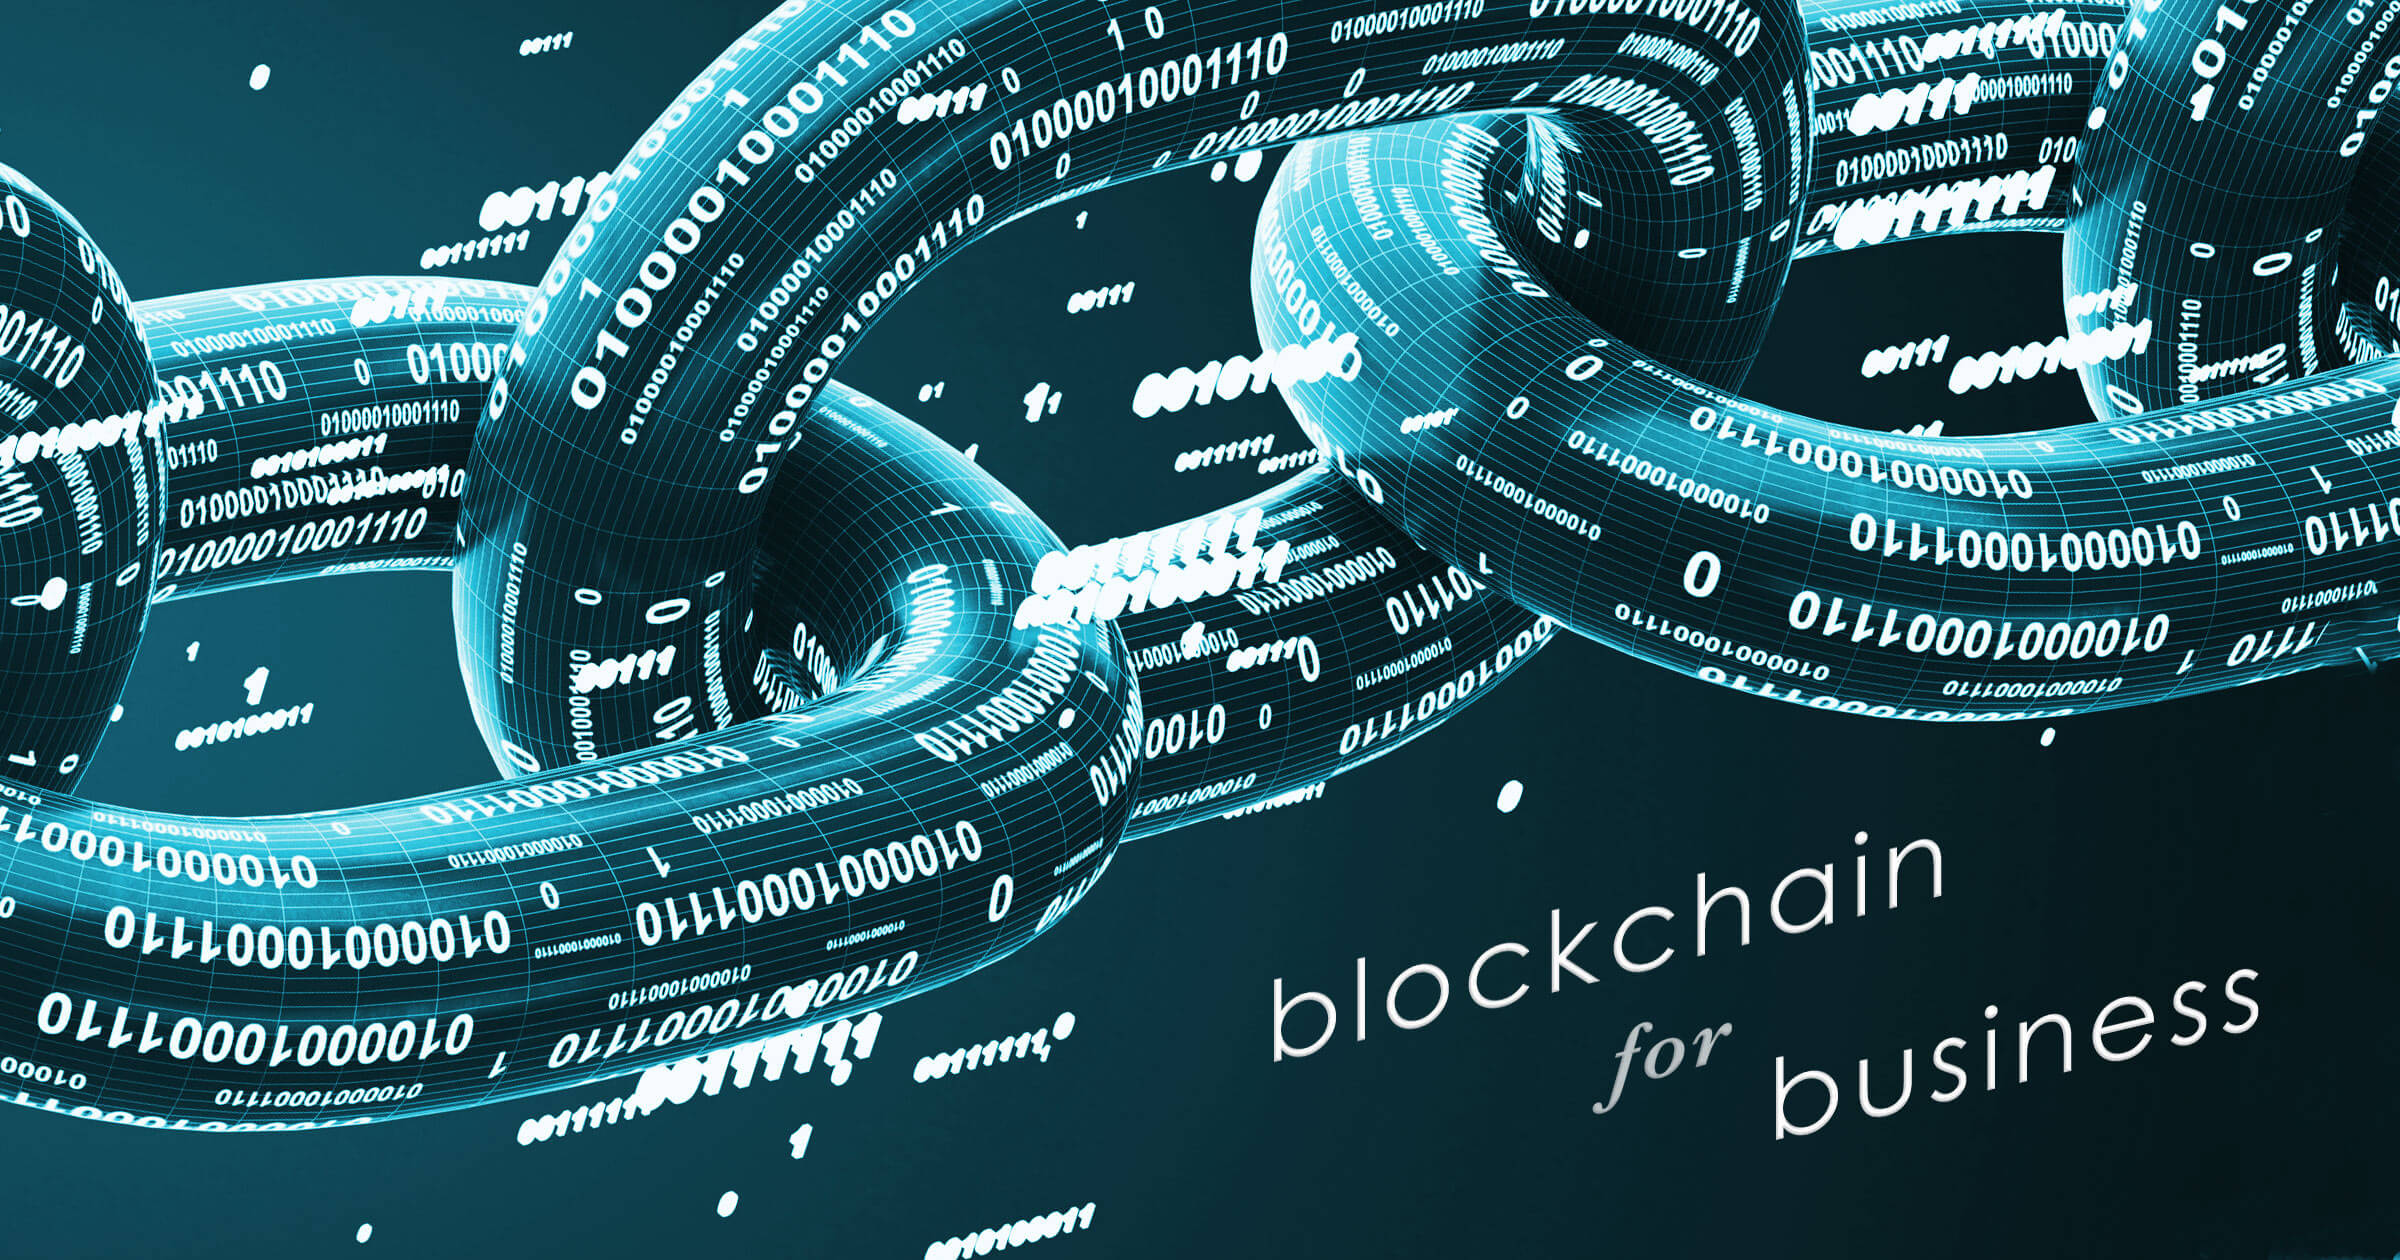 Blockchain for Business: Far Beyond Bitcoin